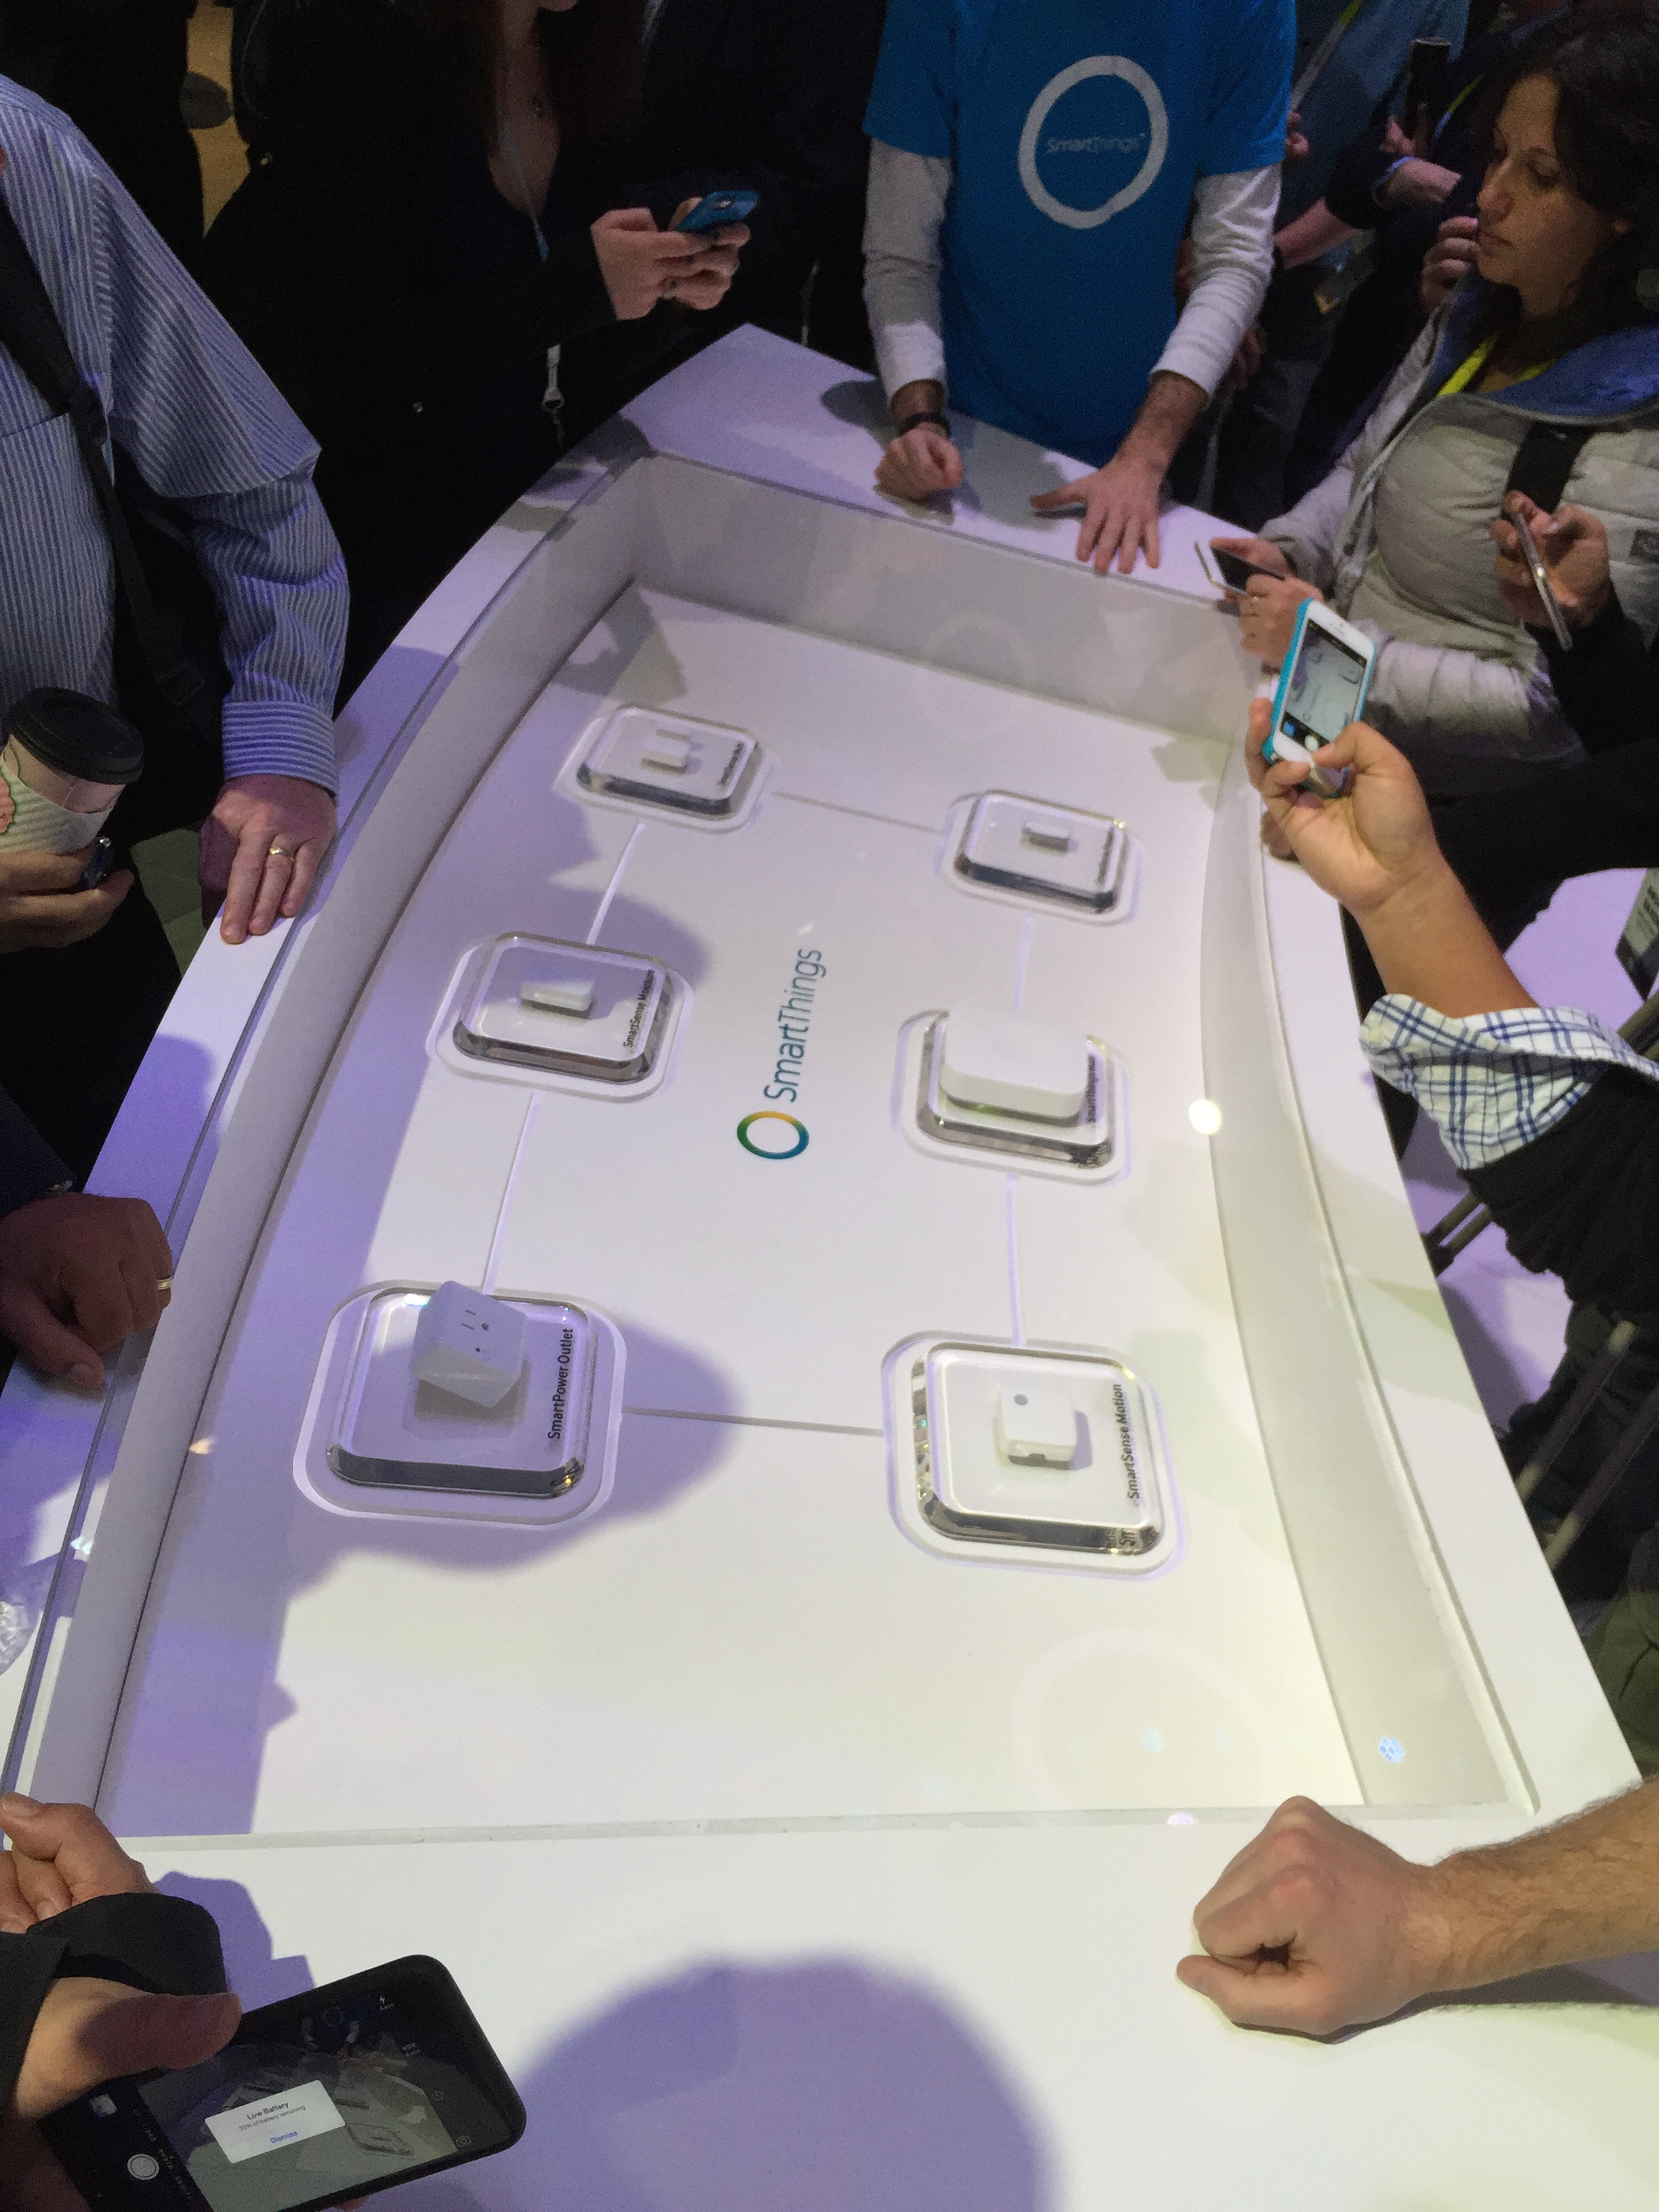 CES 2015 – Tuesday January 6 – Samsung and IoT – Center for